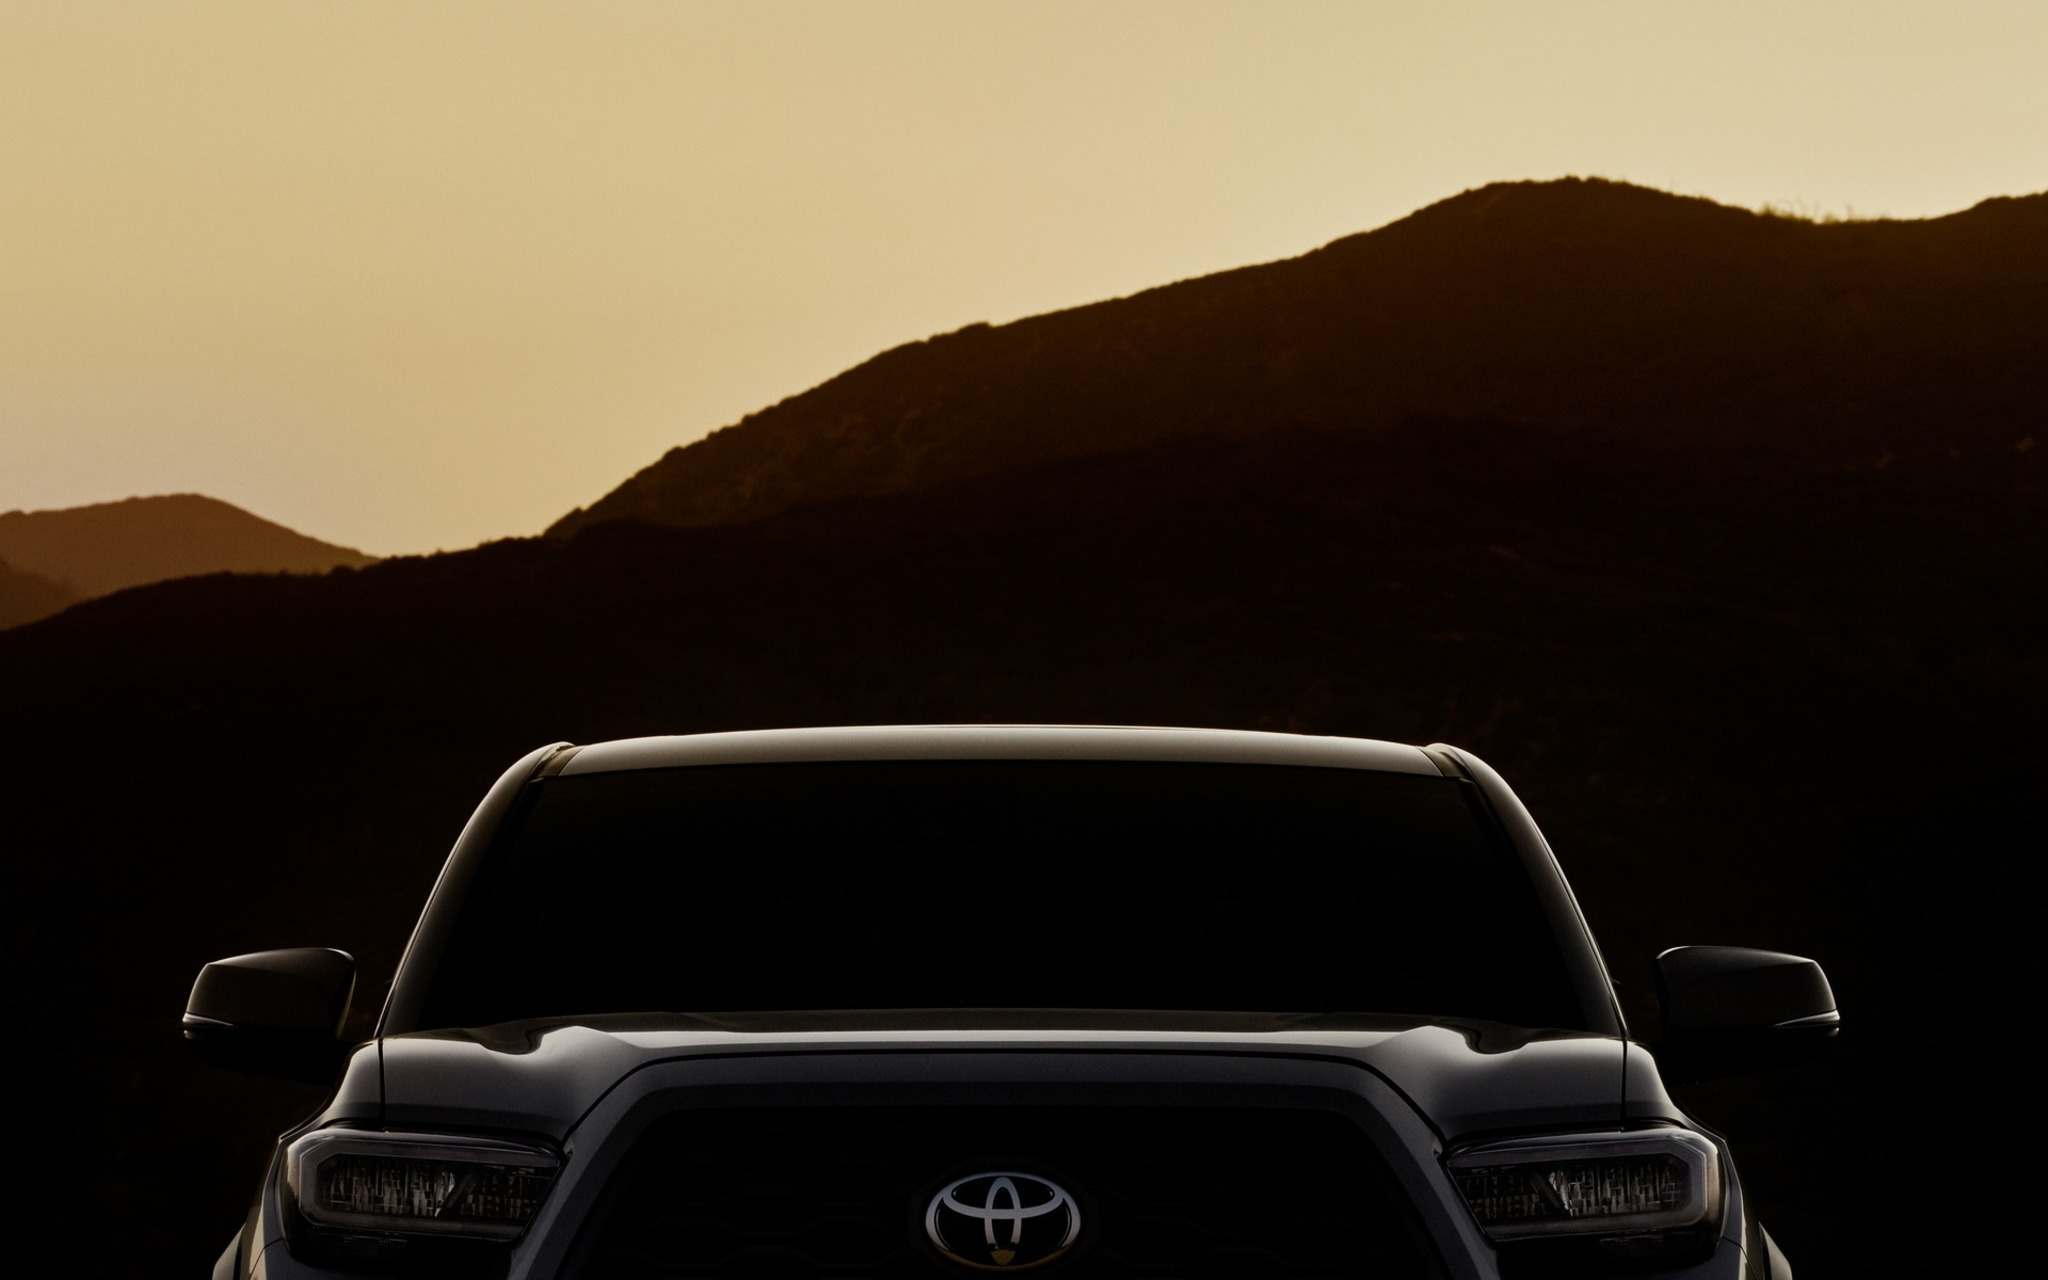 ToyotaIf you want a glimpse of the 2020 Tacoma, this is all Toyota is providing, for now. The truck will be unveiled Feb. 7 at the Chicago Auto Show.